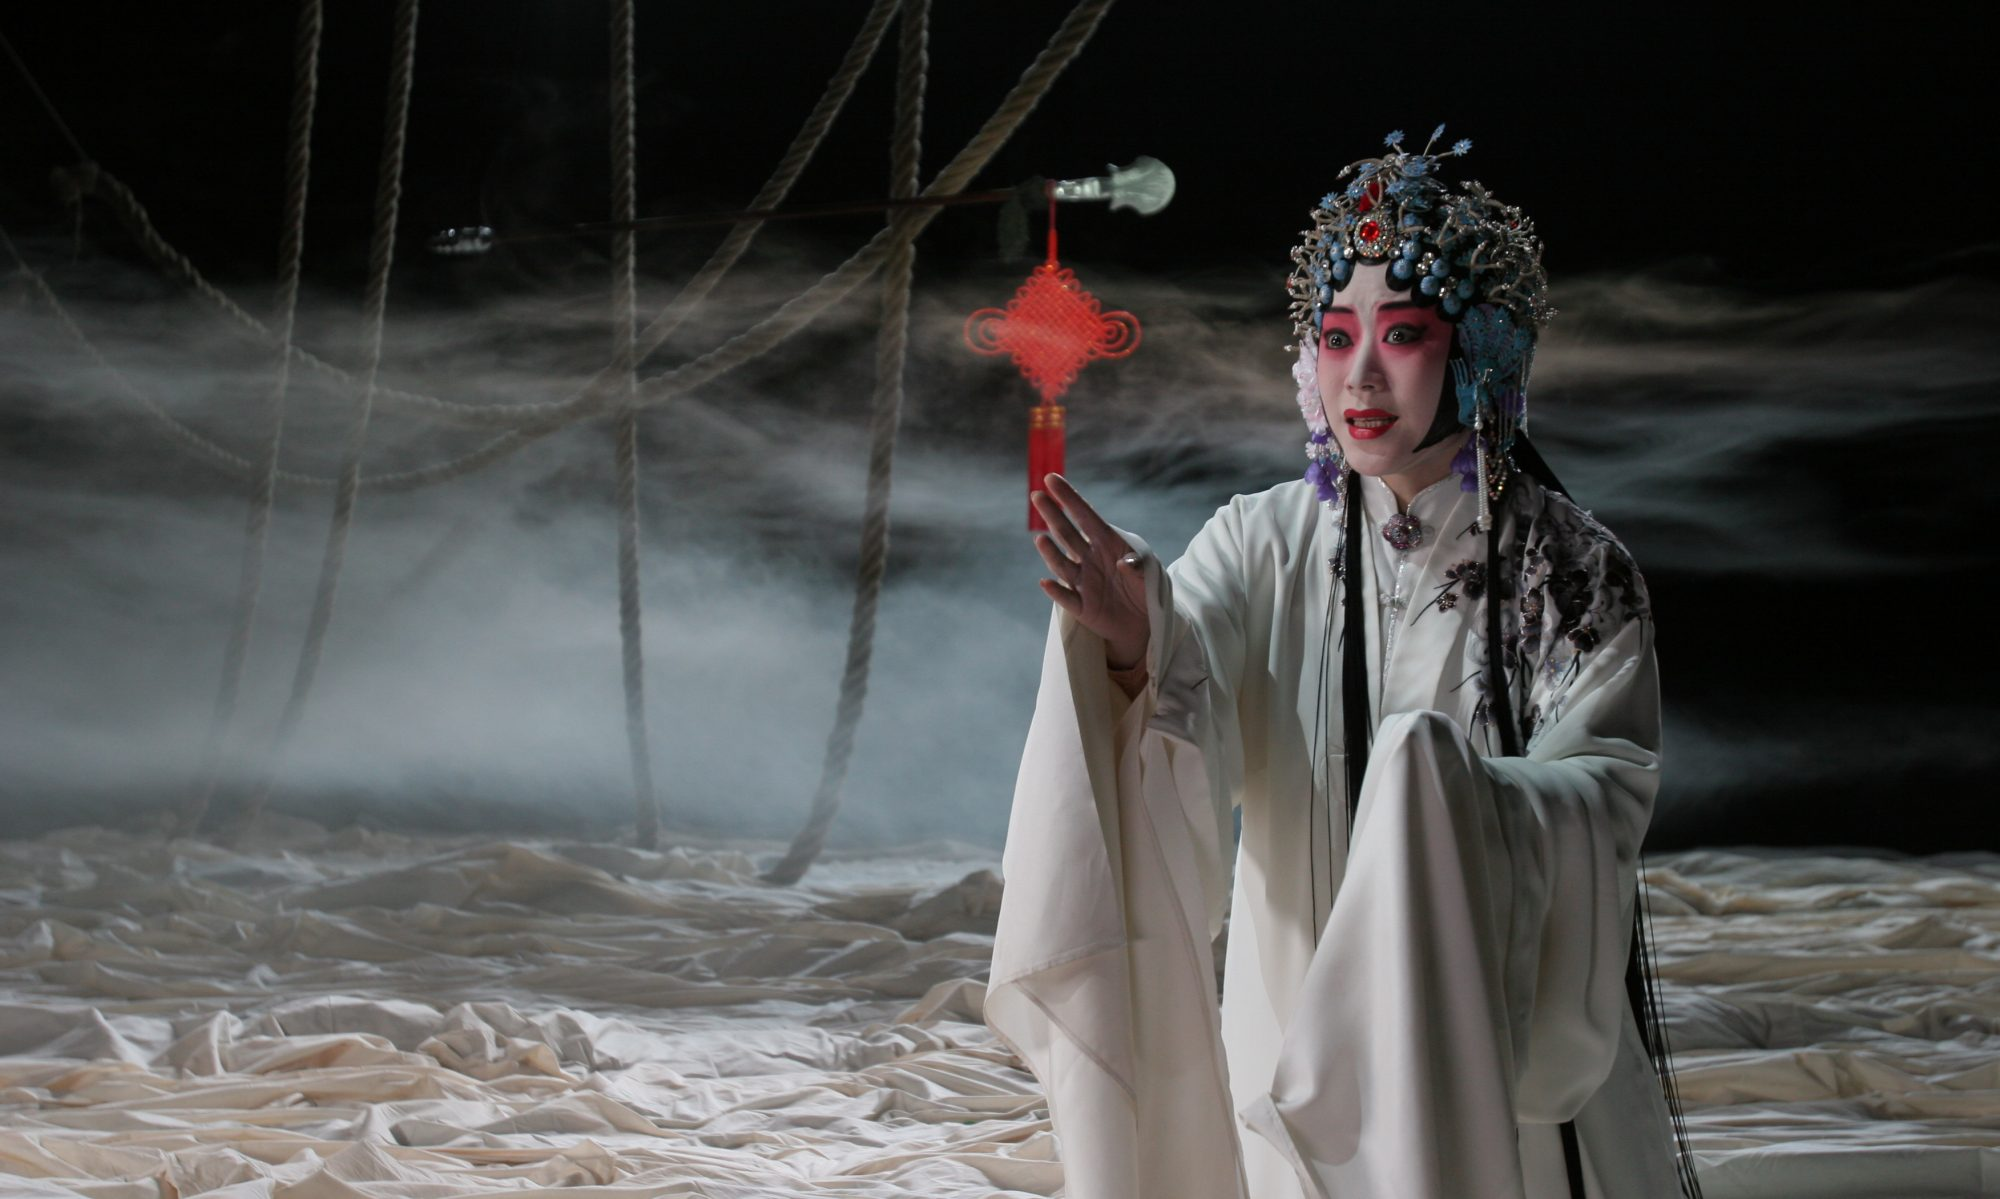 Connecting the Dots Through Guo Baochang: Contemporary Chinese Opera, Film, TV